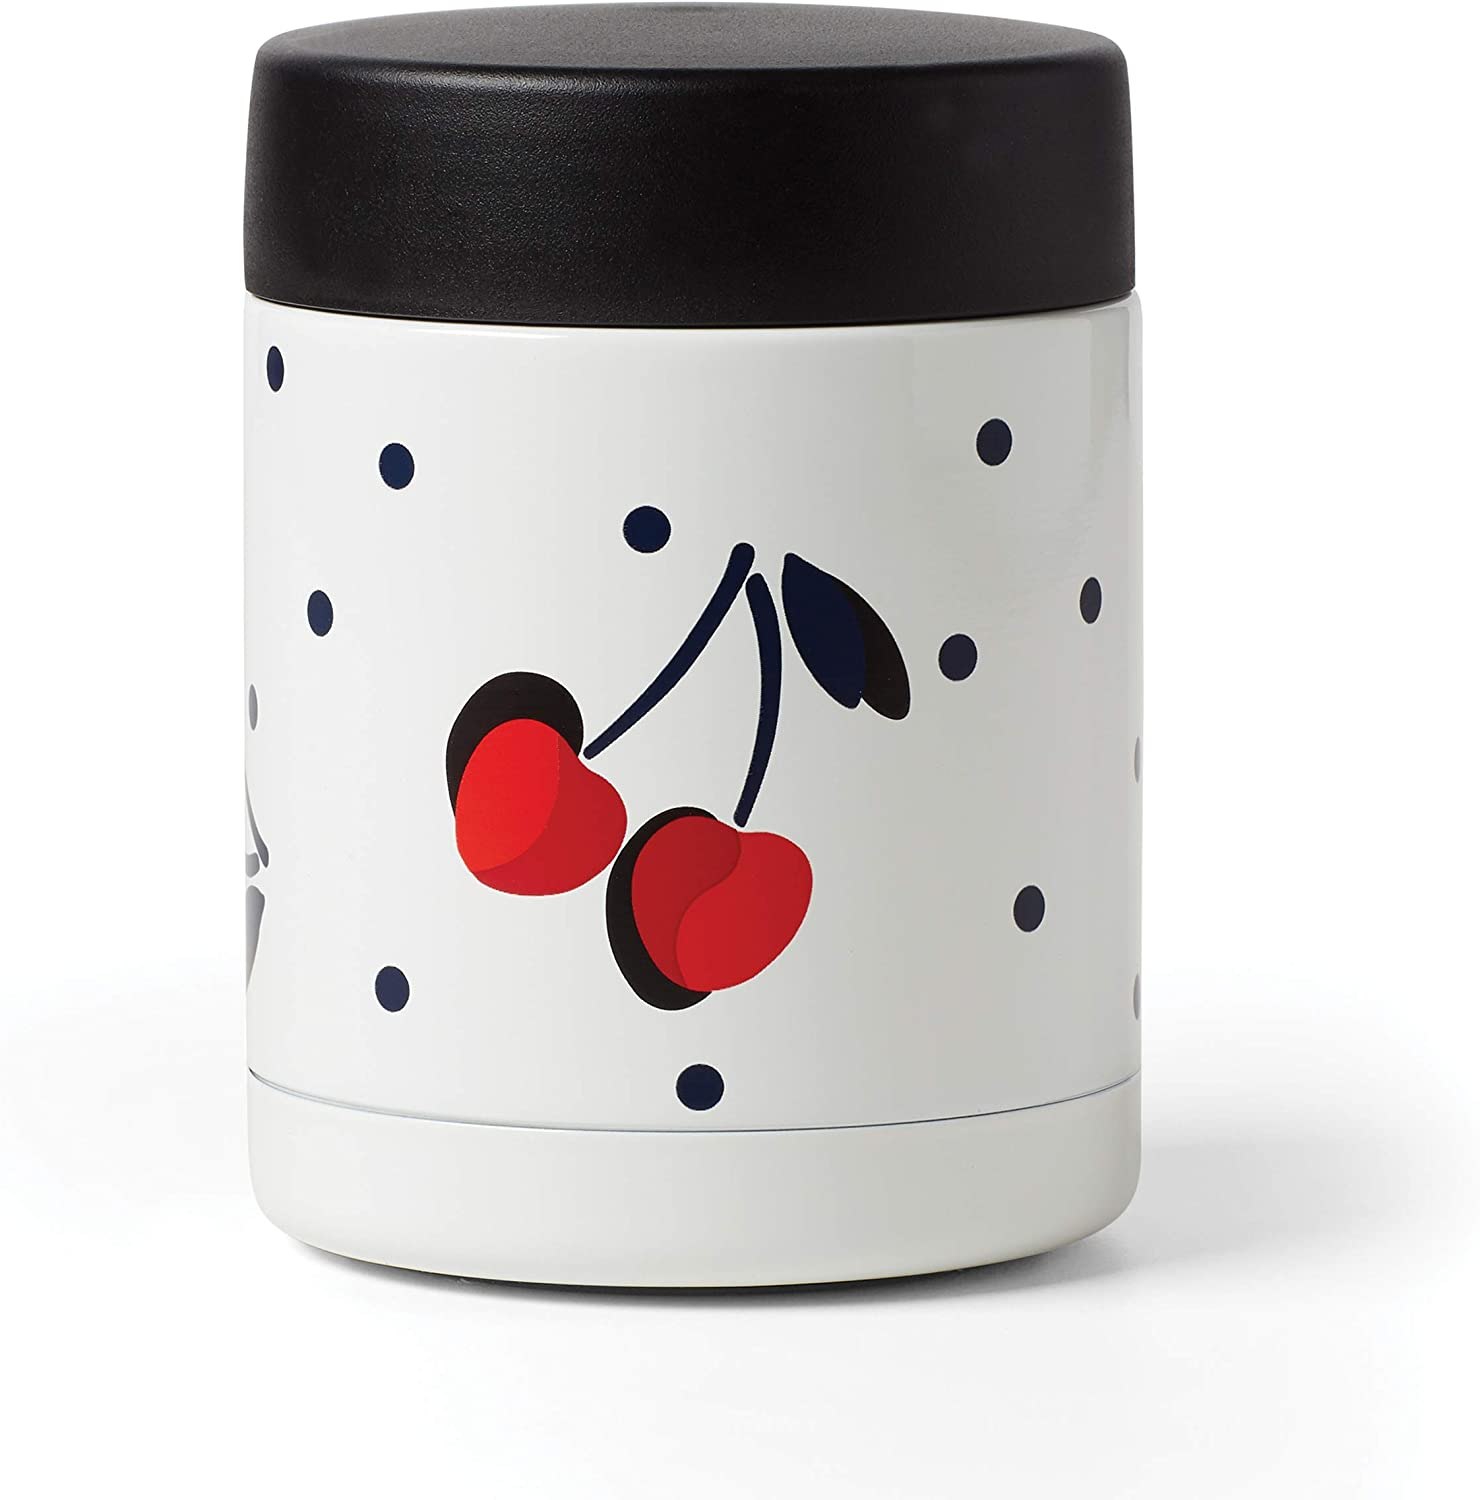 KATE SPADE Vintage Cherry Dot Insulated Food Container, 0.70 LB, Multi